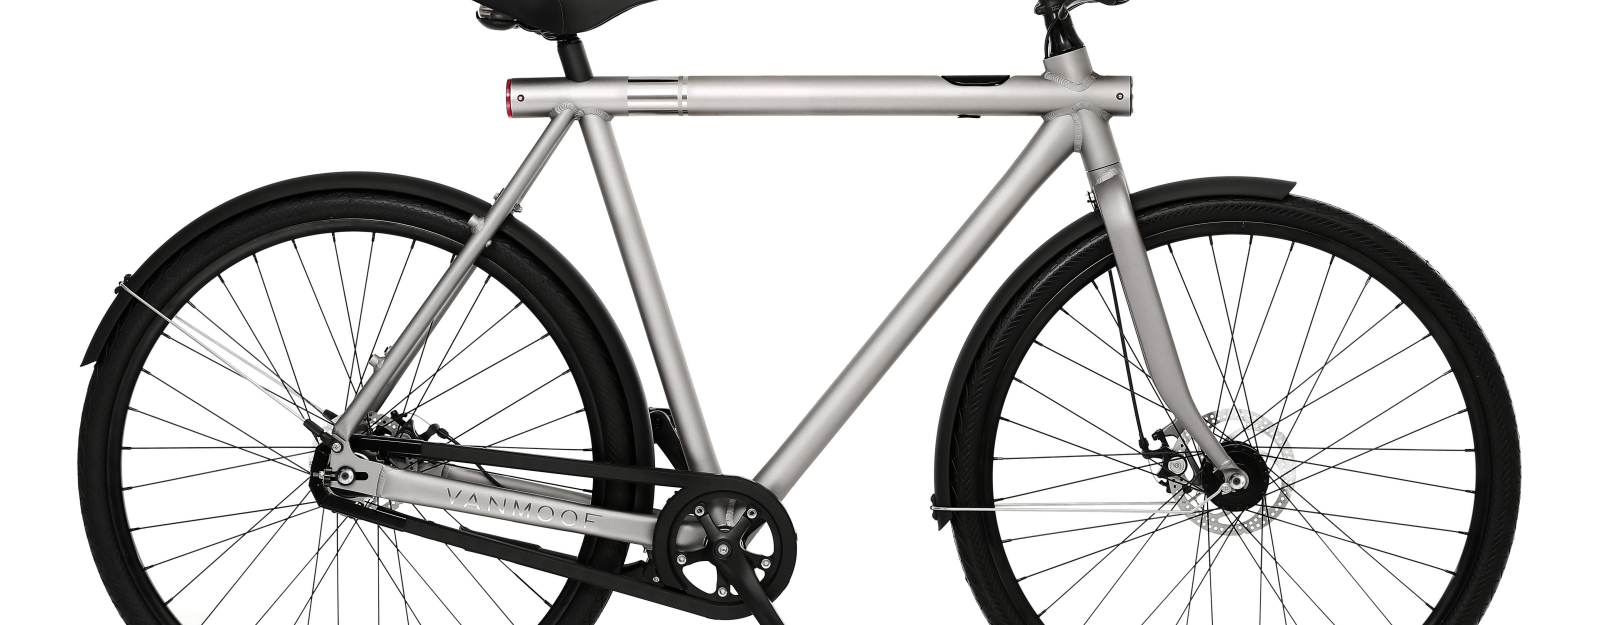 This Crazy Keyless City Bike Could Bring Smart Tech To